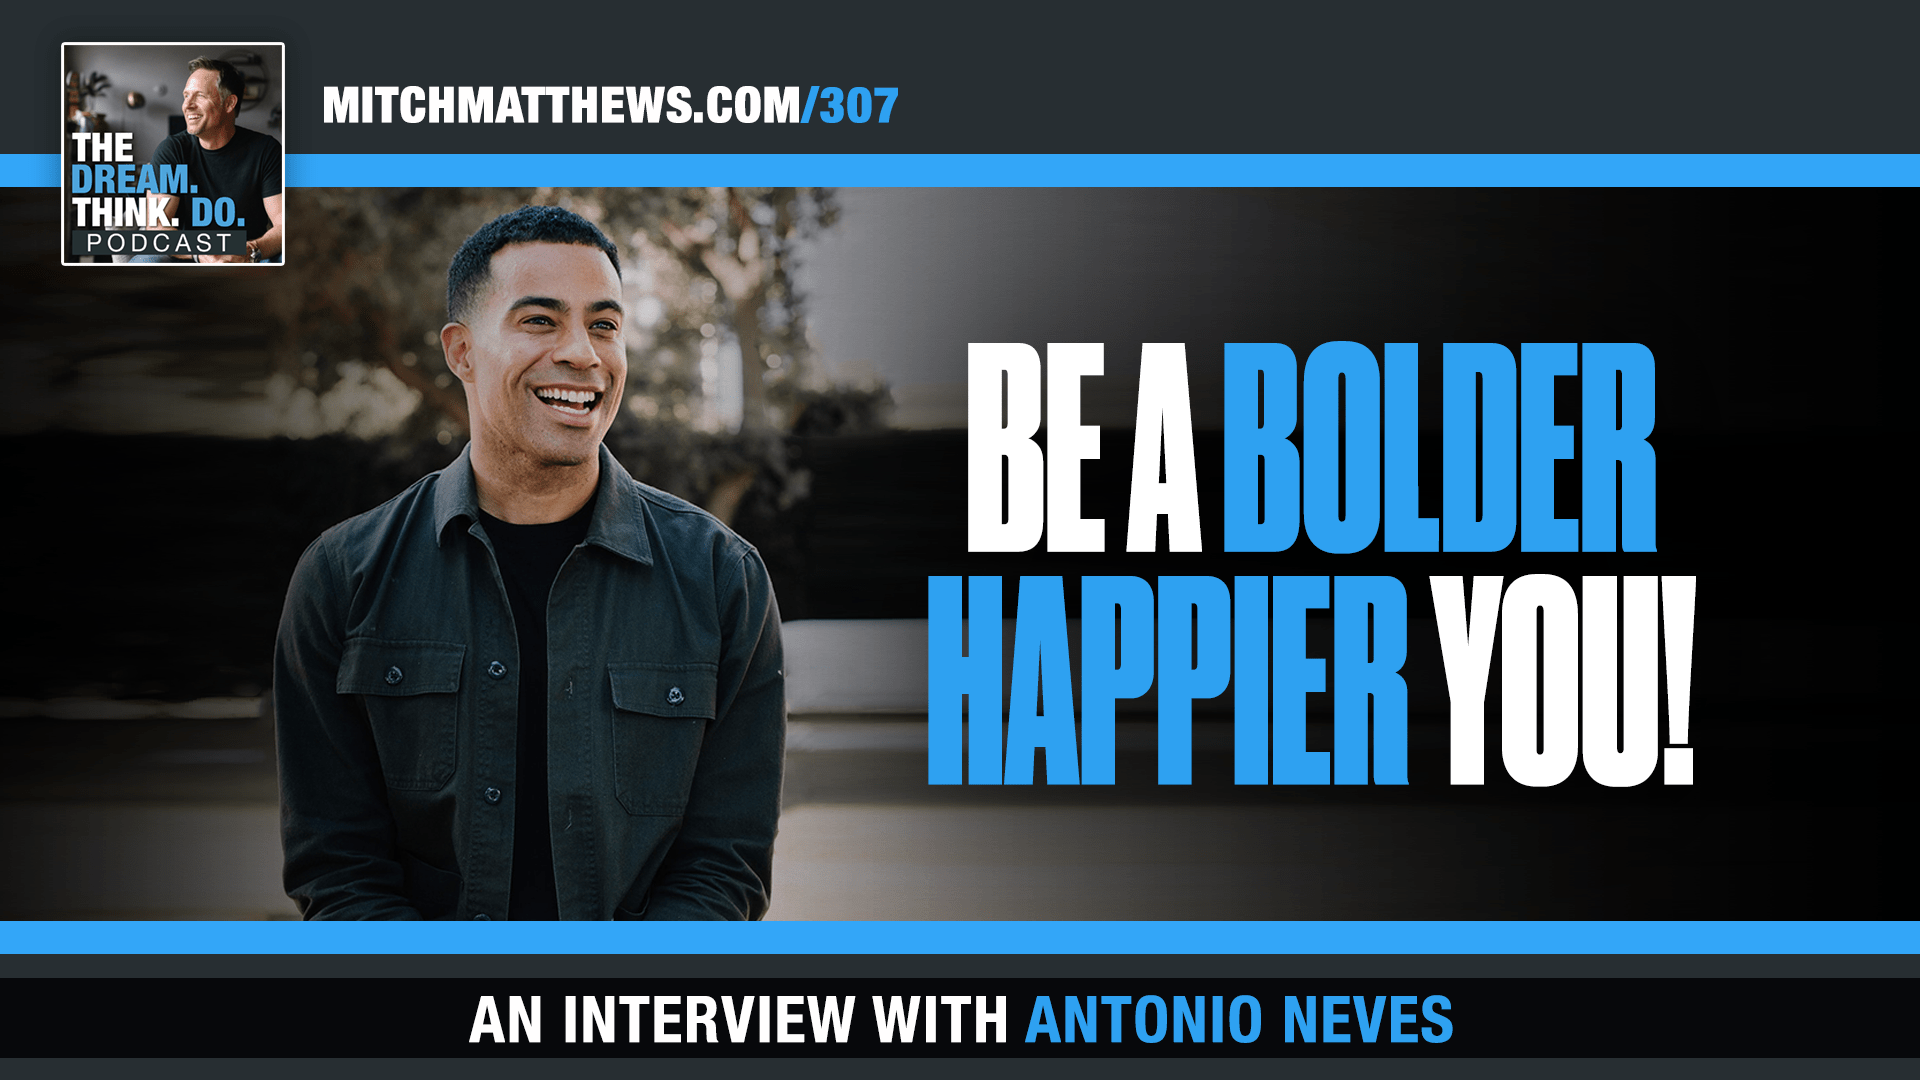 Antonio Neves - BE A BOLDER HAPPIER YOU!